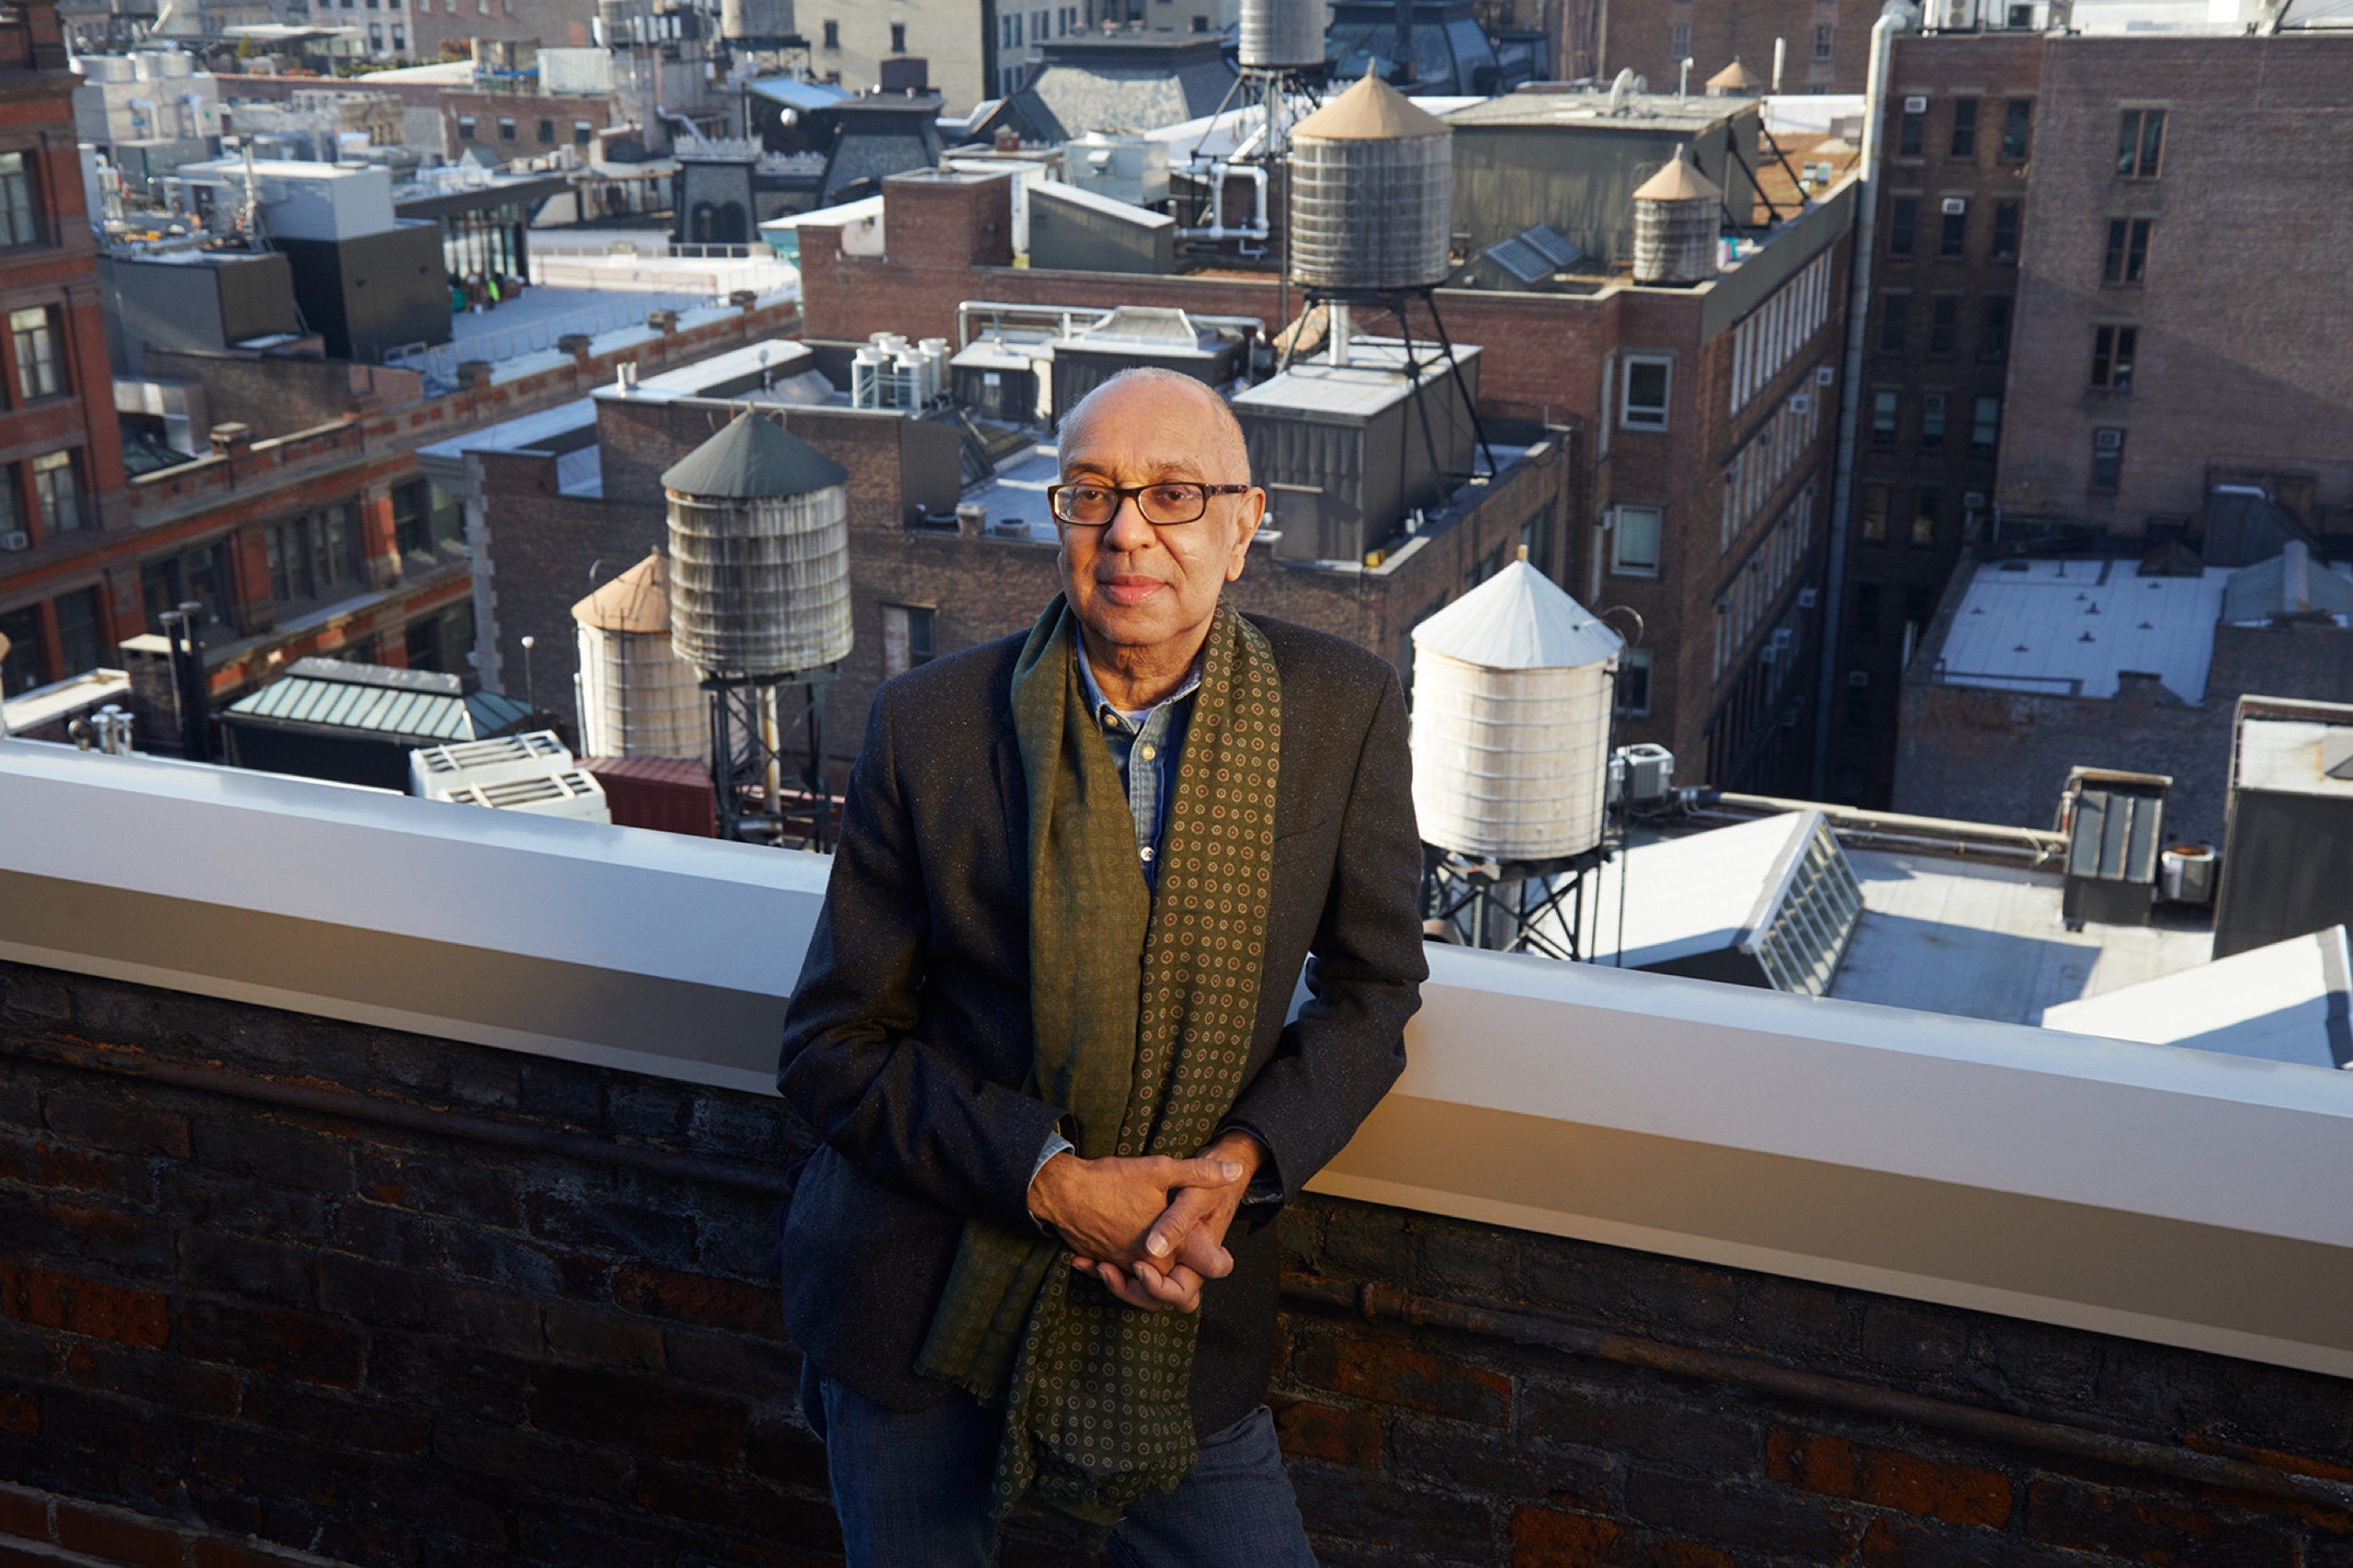 Director George C. Wolfe stands on a New York City rooftop. Behind him: a glimpse of the city.